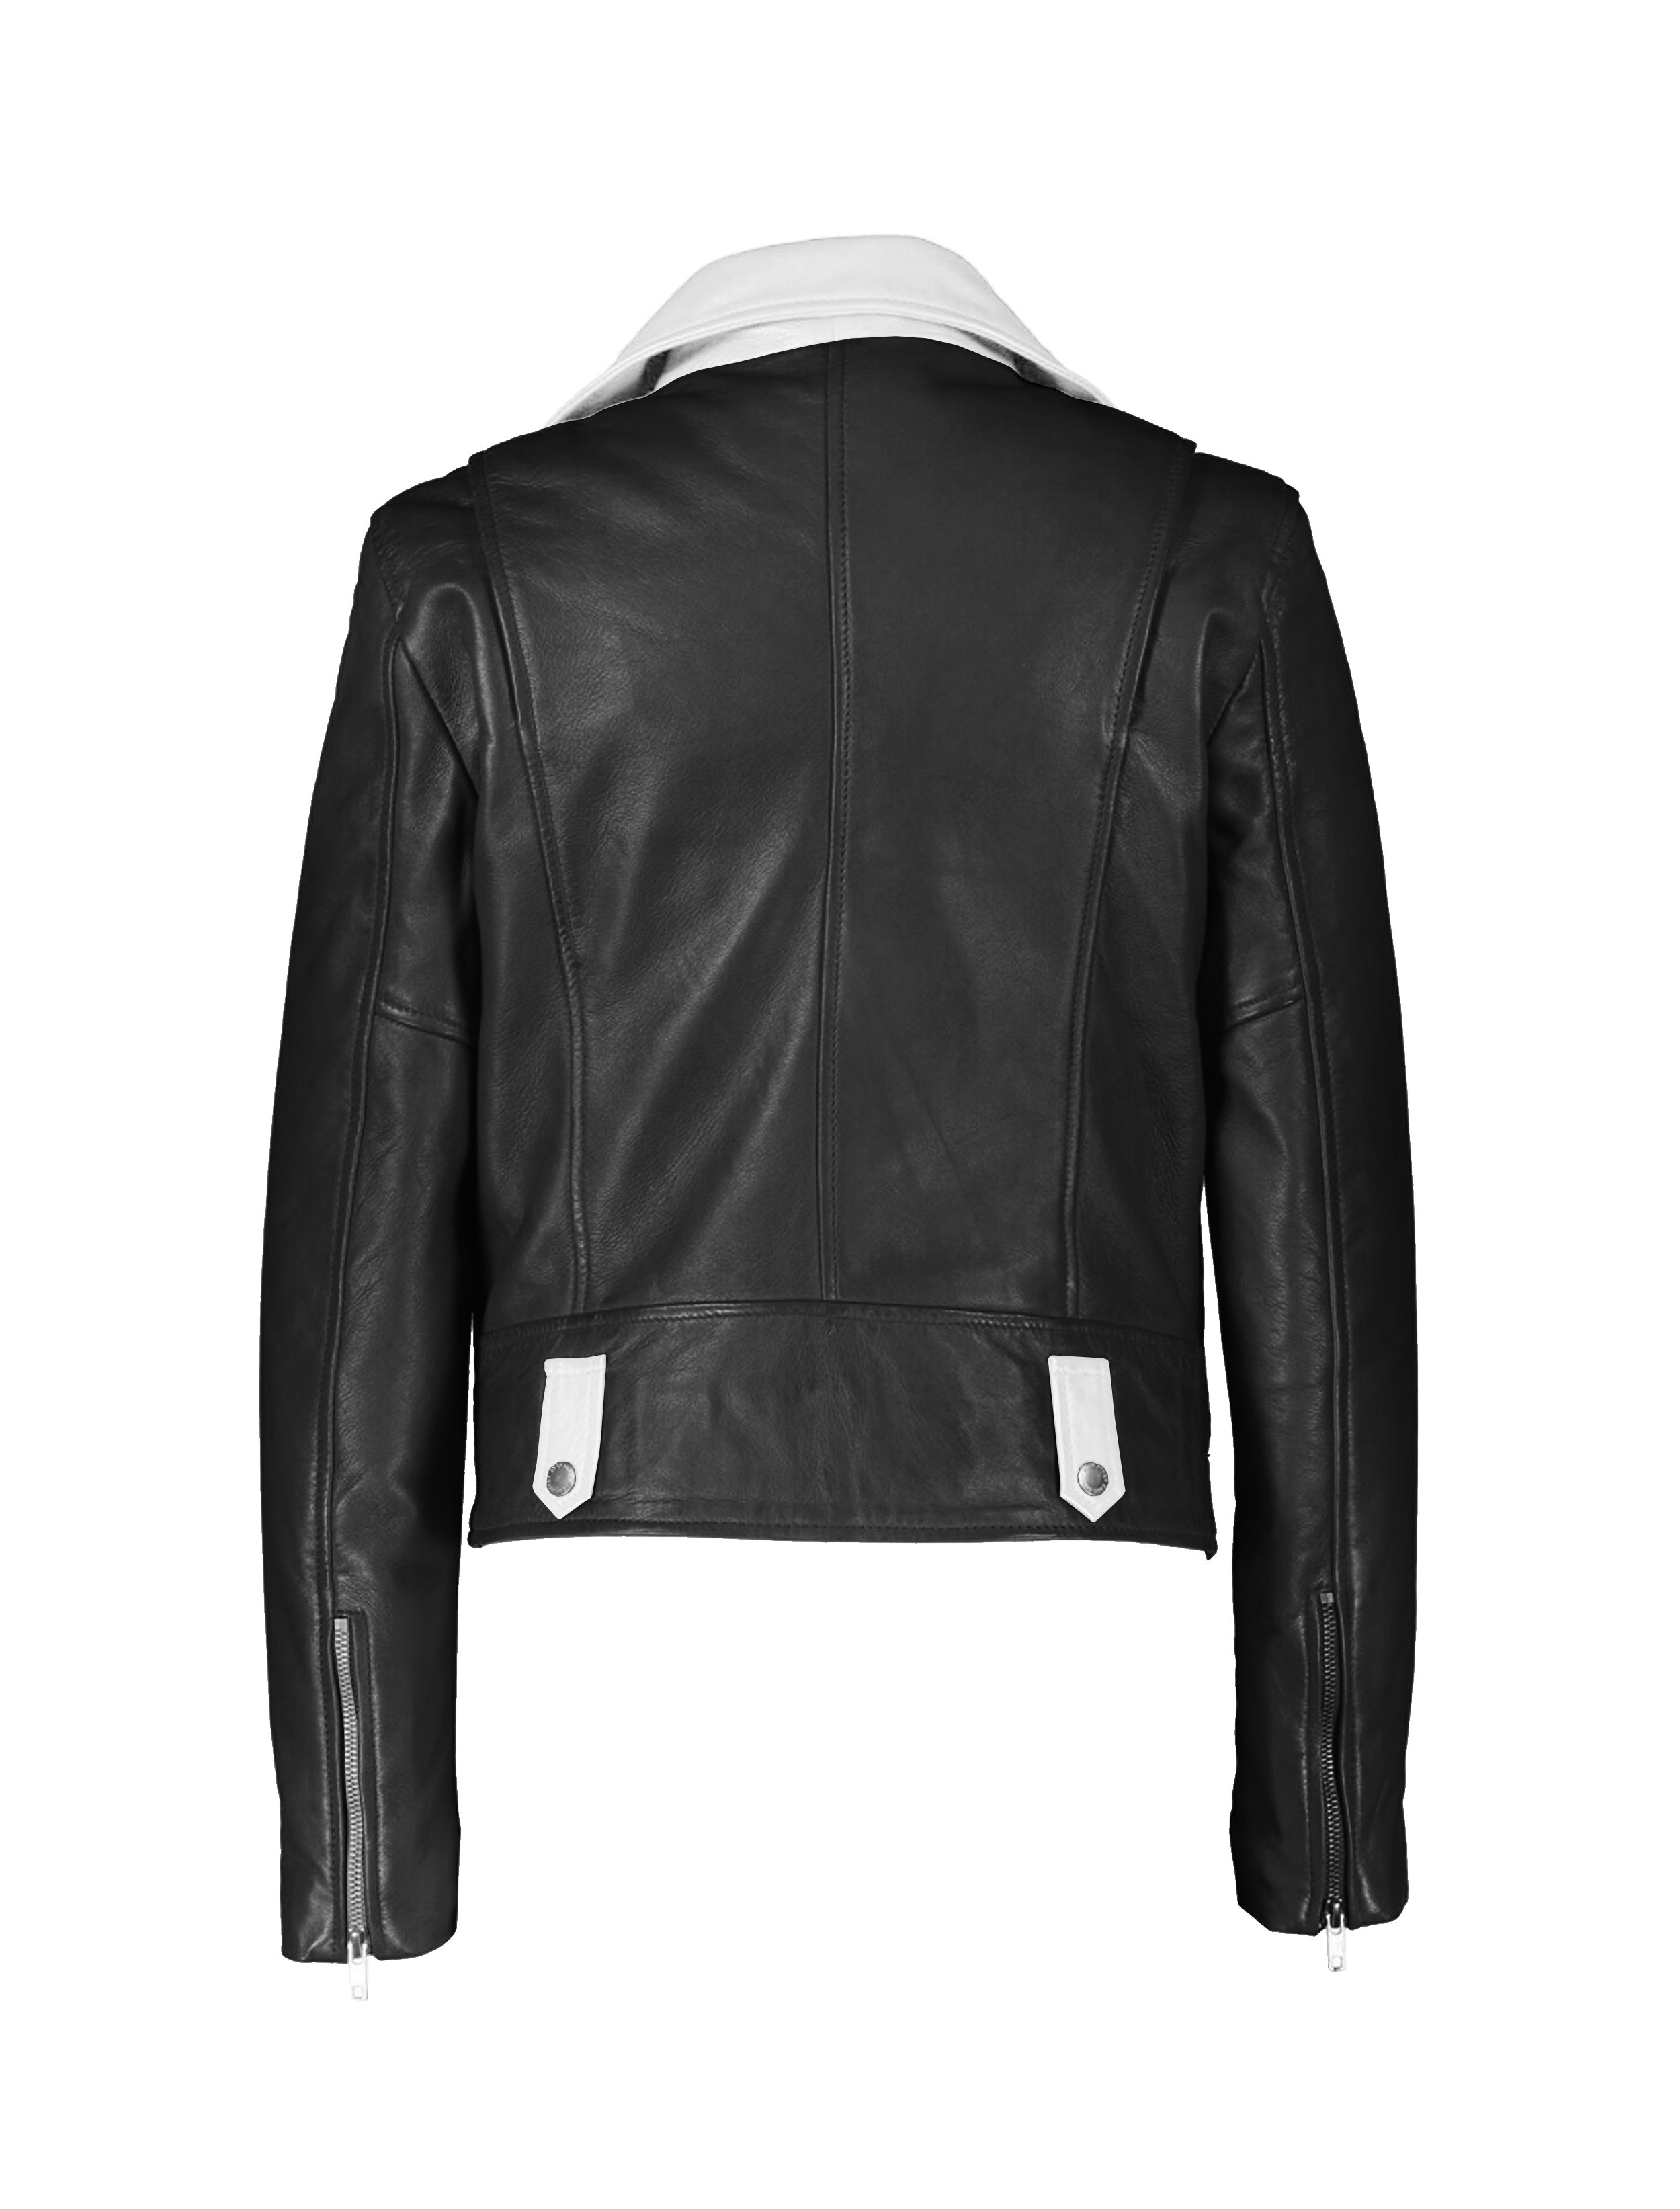 BLACK AND WHITE LEATHER DUO TONE MOTORCYCLE JACKET